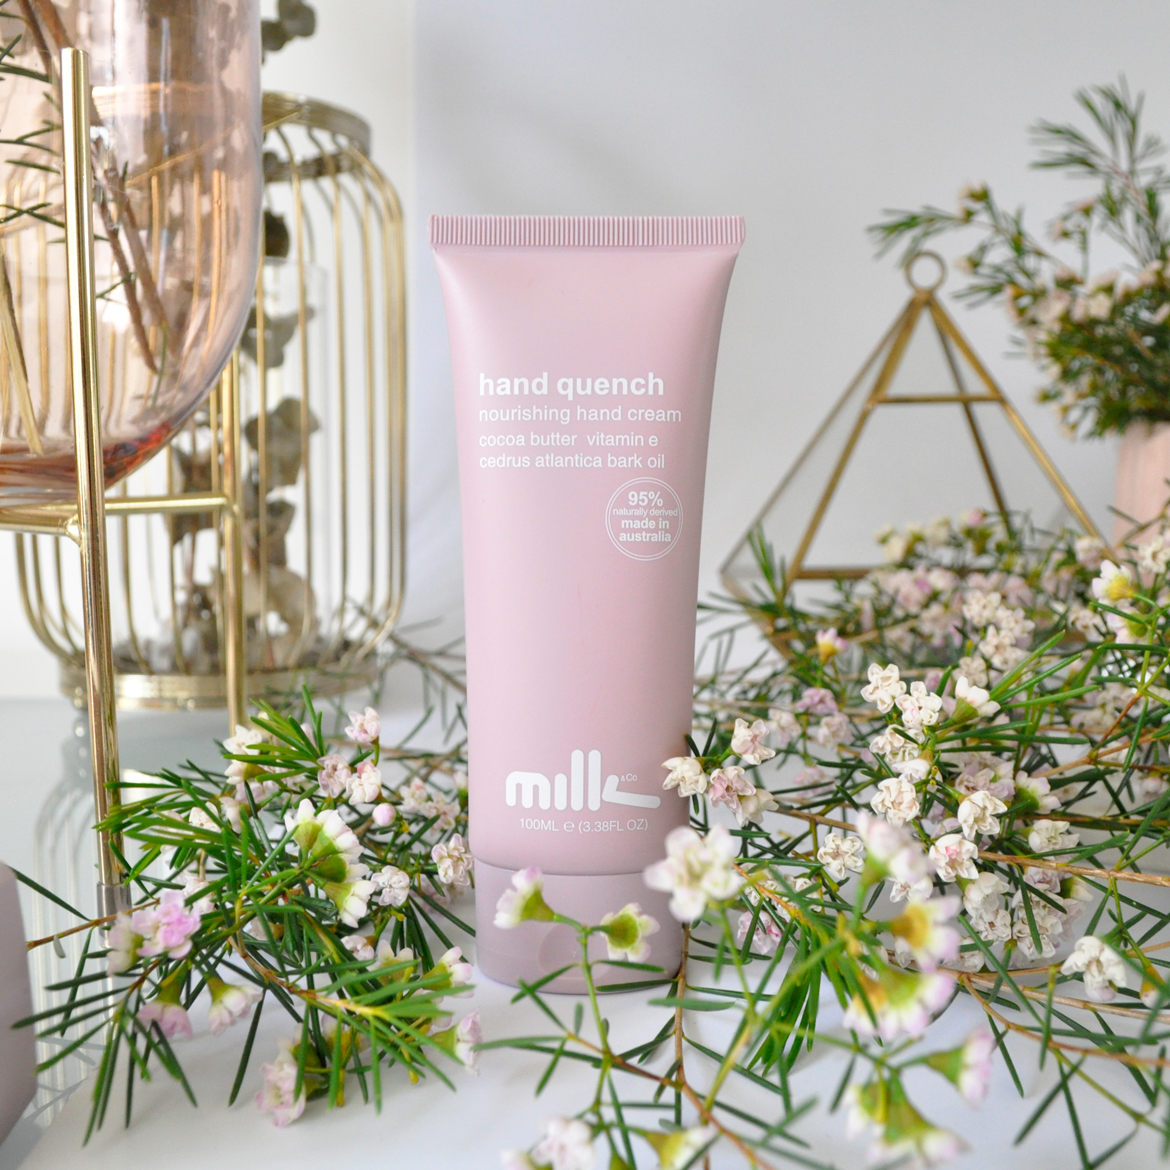 Milk & Co Hand Quench